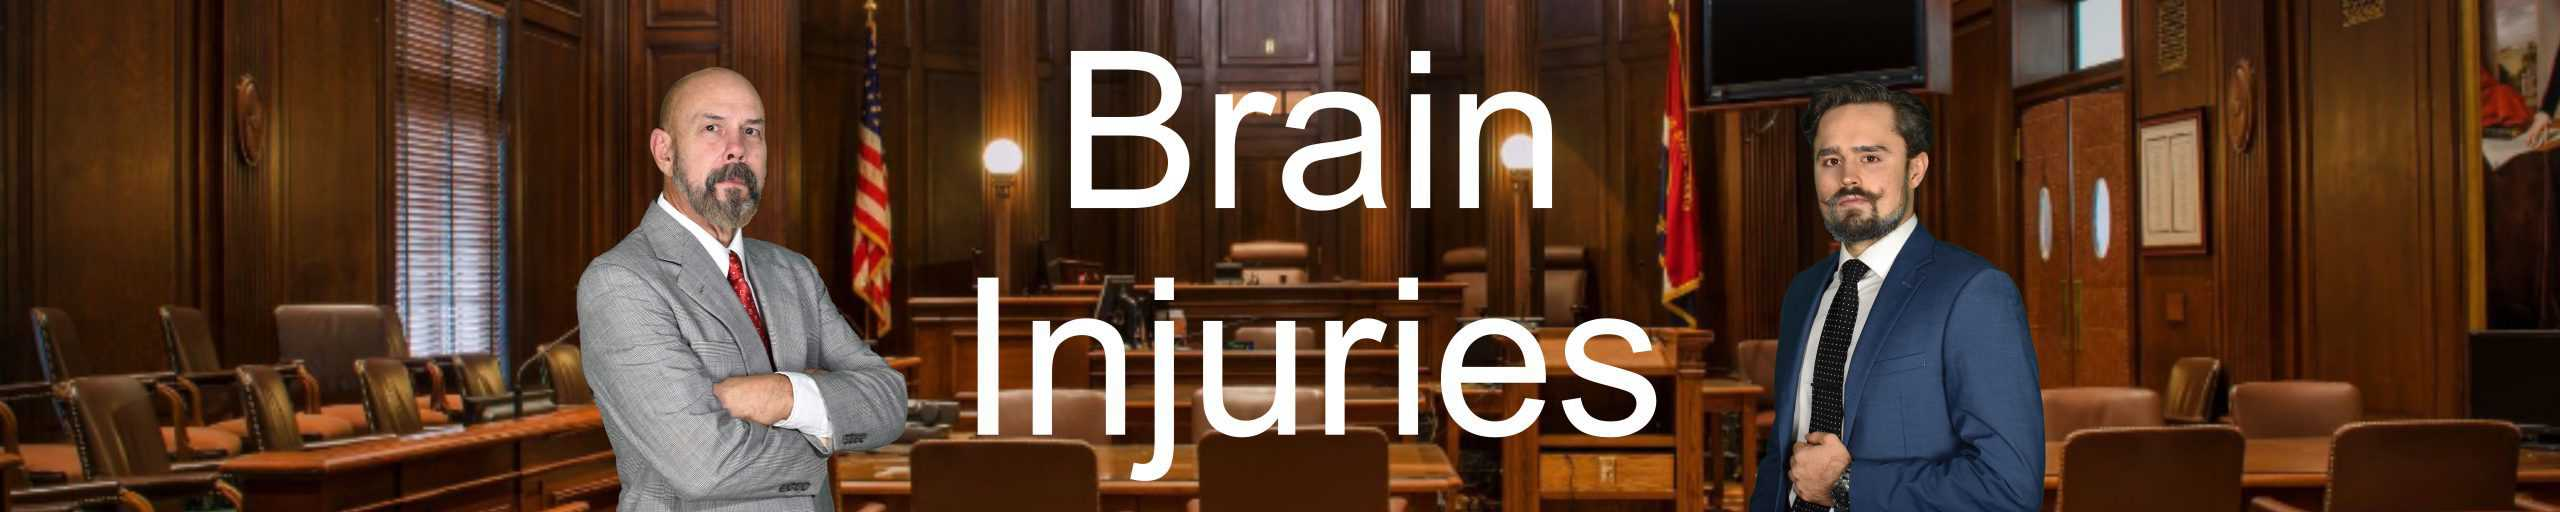 Brain-Injury-Accidents-Personal-Injury-Attorney-Lawyer-Hurt-Broken-Rear-End-Money-Settlement-Hospital-ER-Damage-Insurance-Company-Concussion-Whiplash-Post-Syndrome-Confused